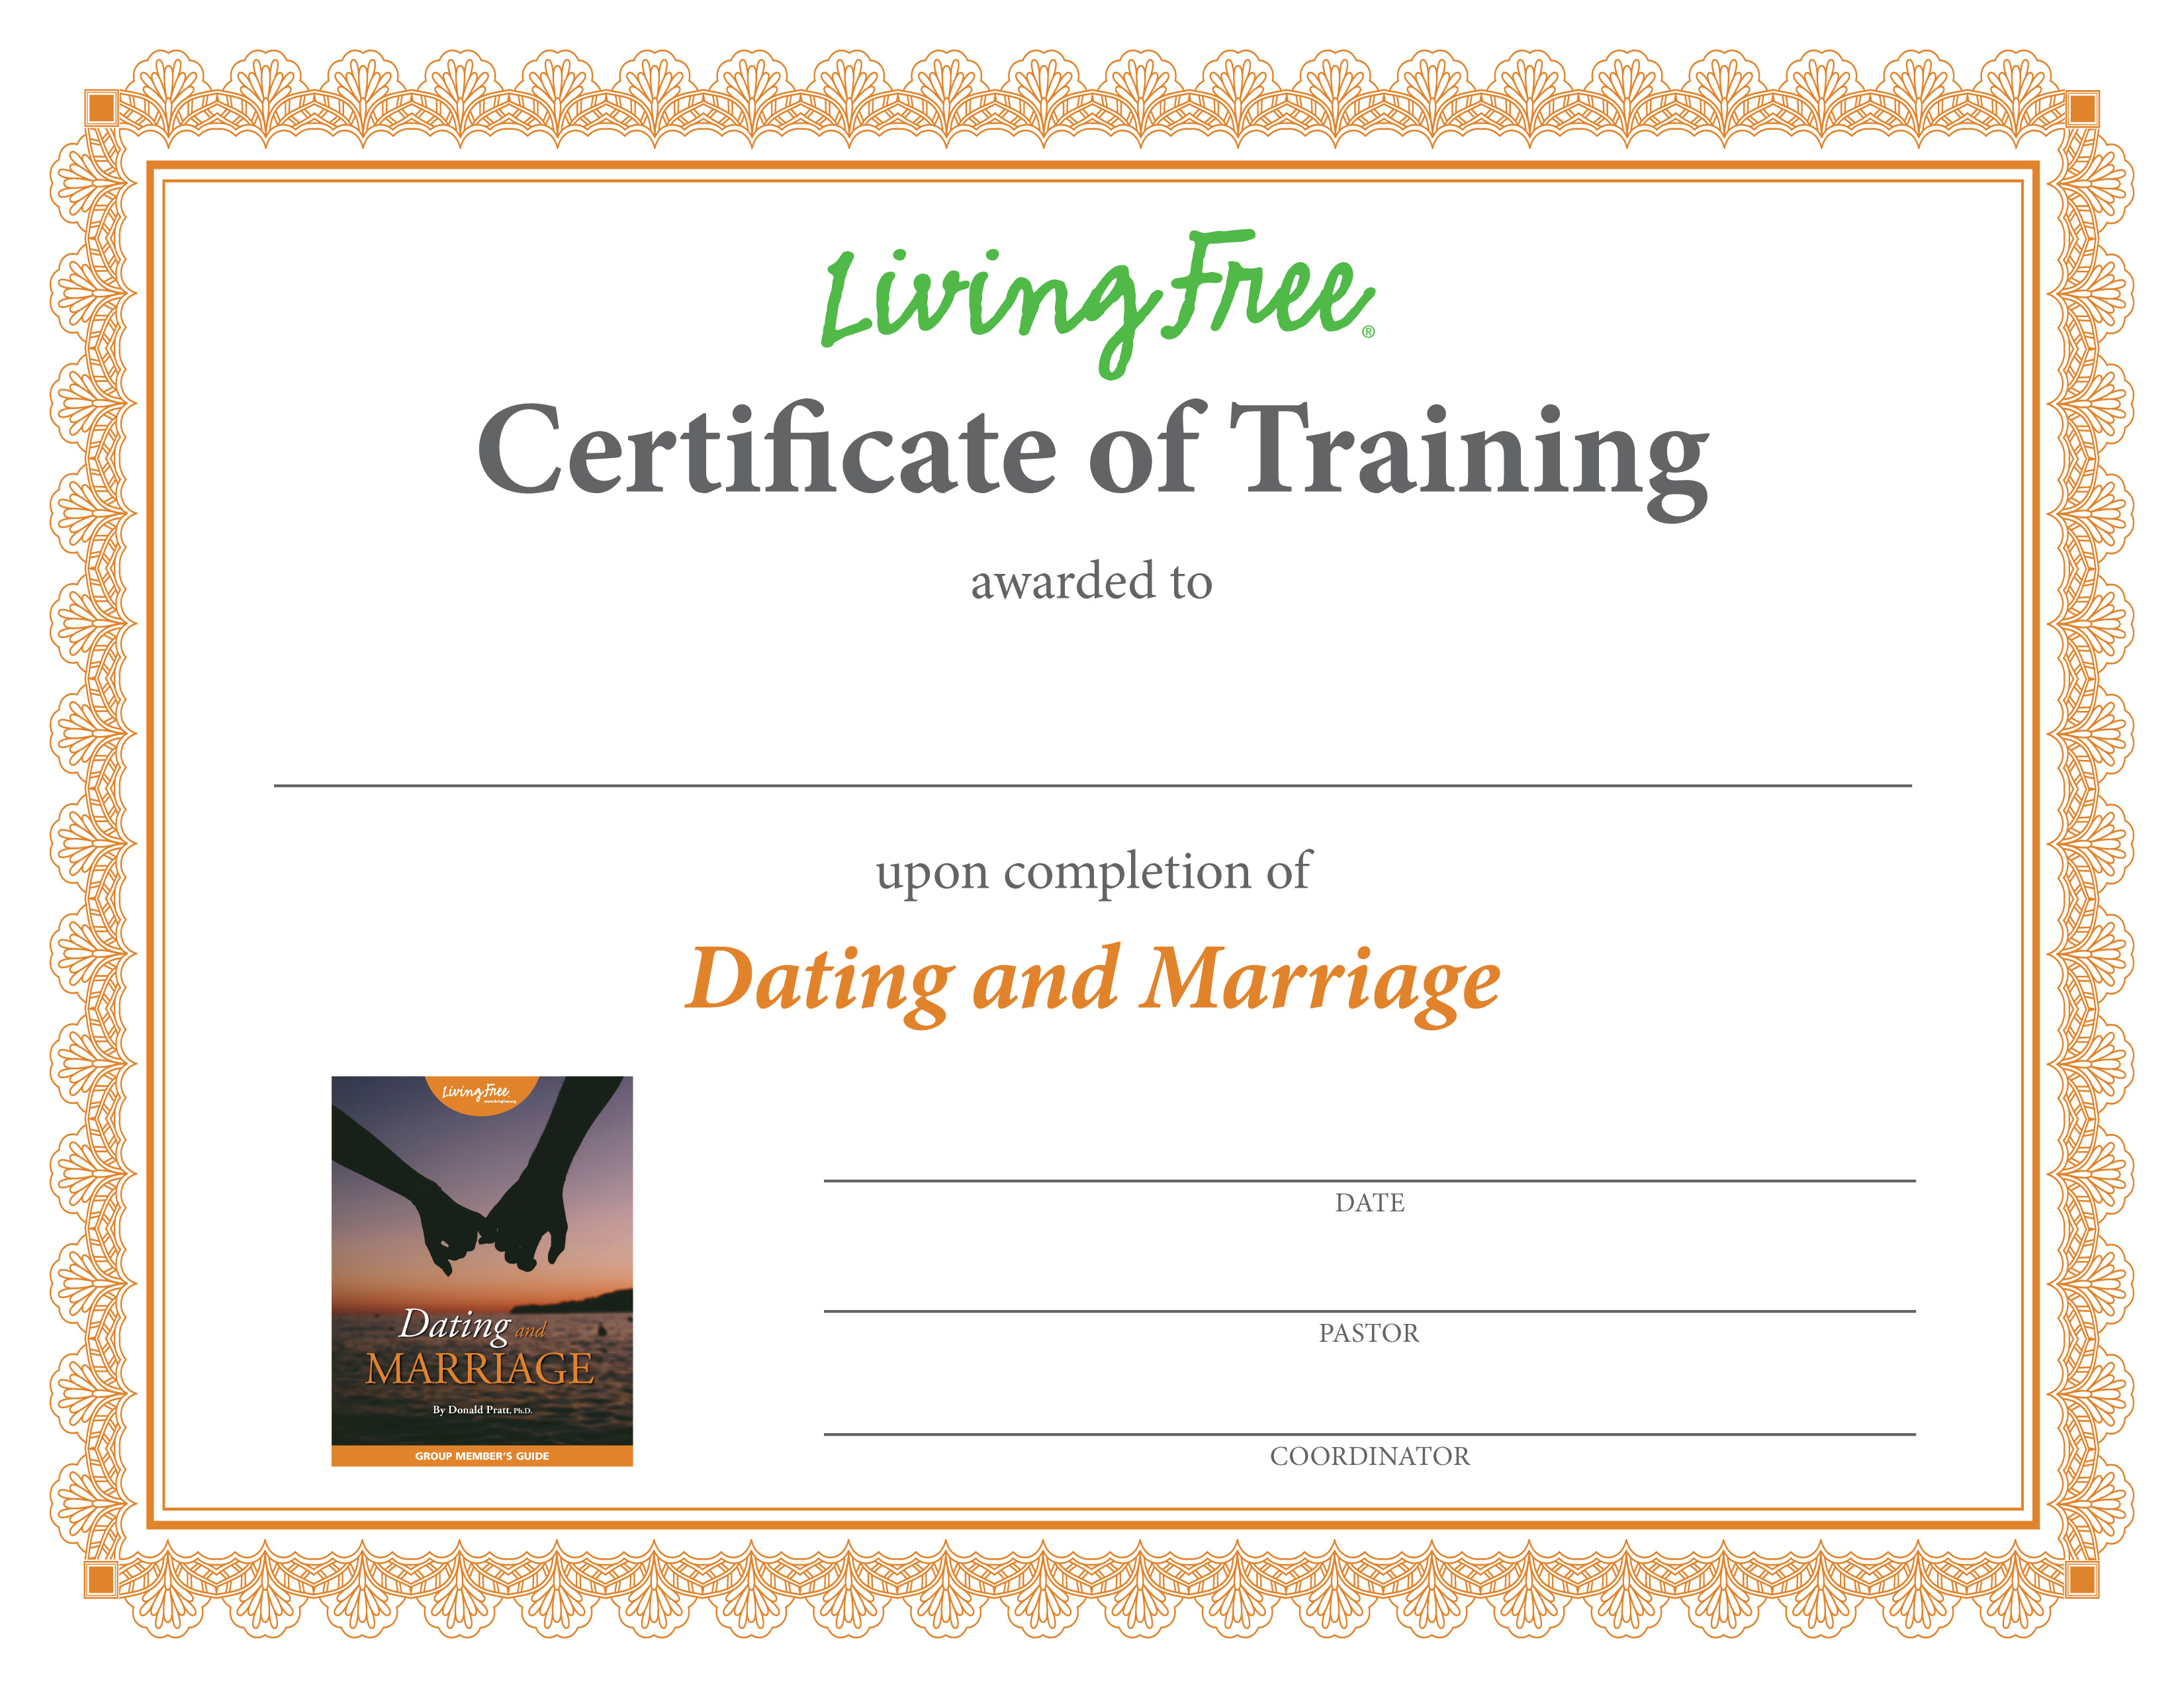 Dating and Marriage Digital Certificate